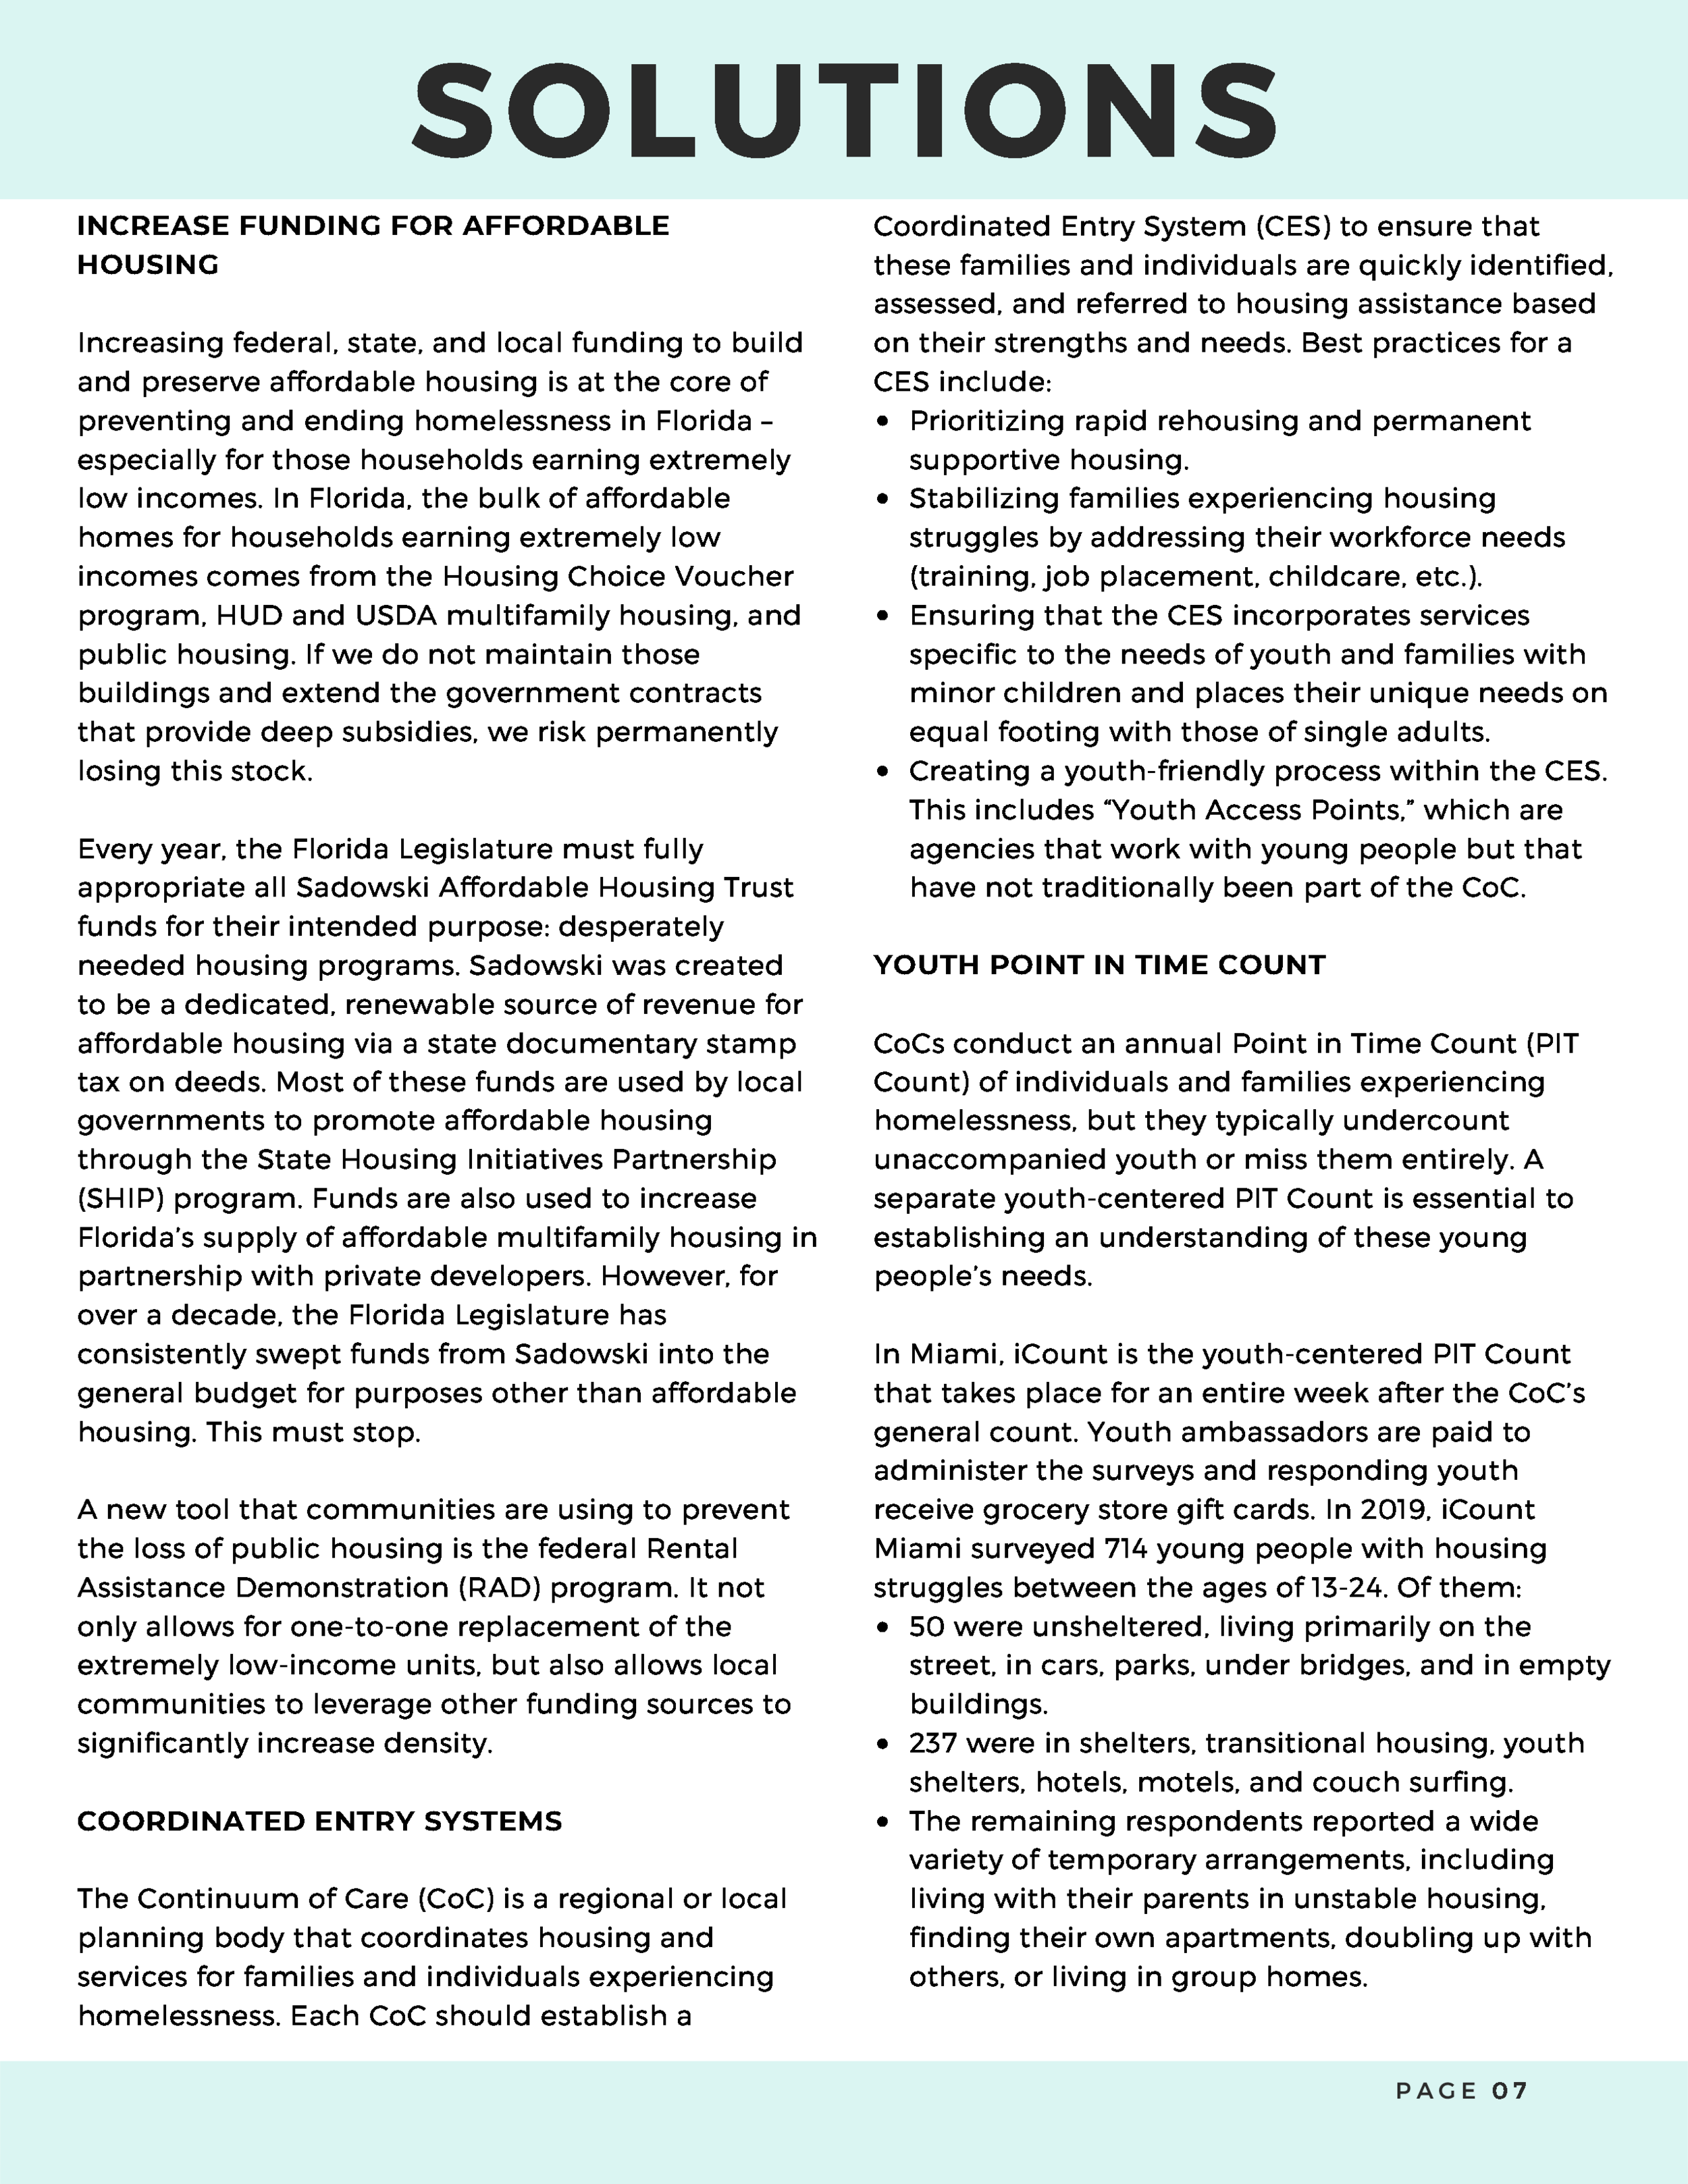 Students Experiencing Homelessness in Florida - Updates and Solutions - August 2019-8.png